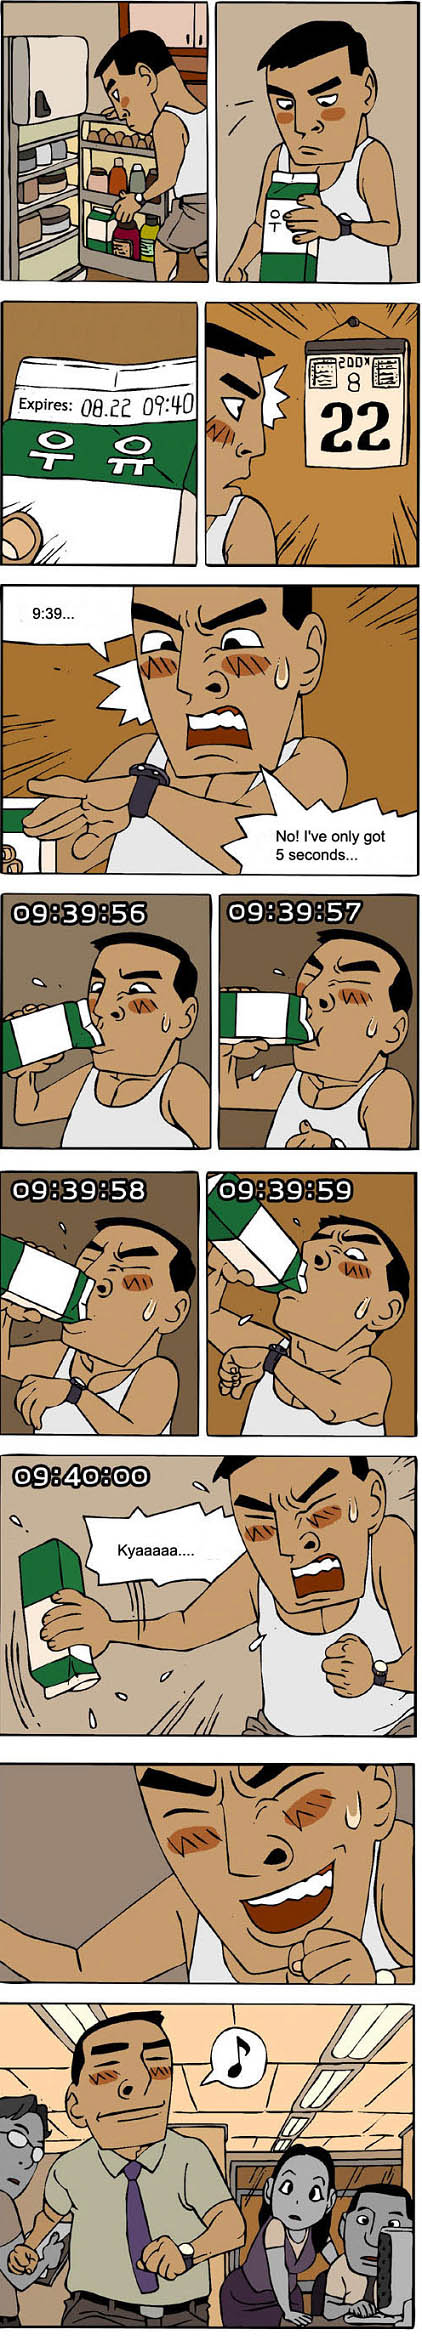 funny-picture-chug-milk-expire.jpg